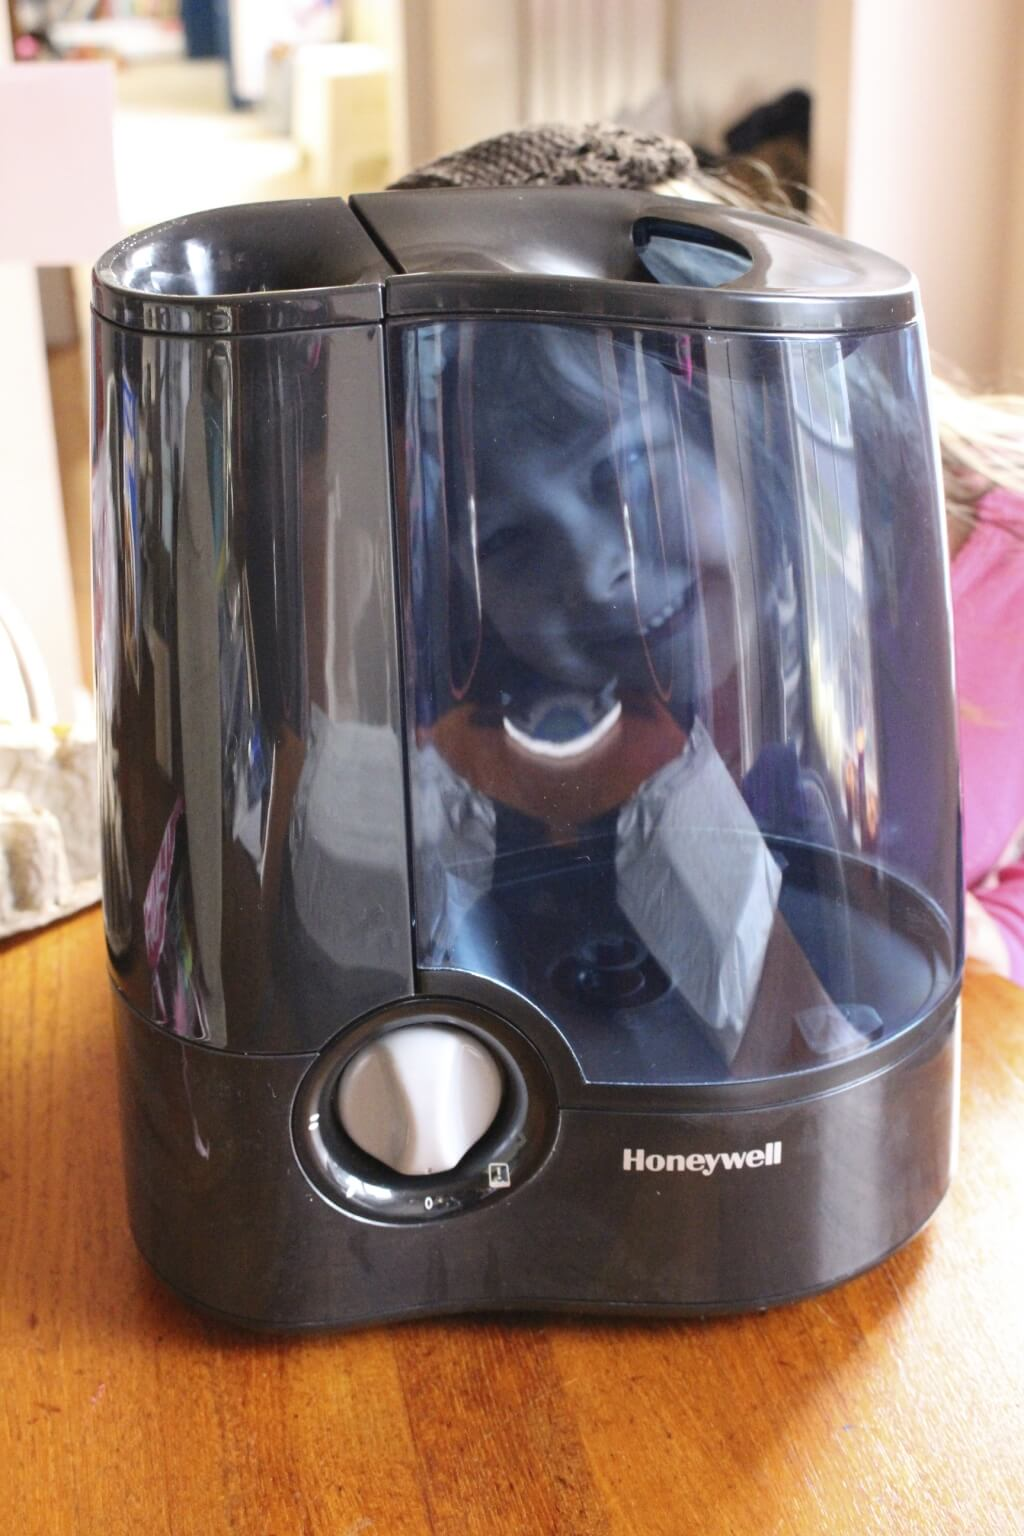 Honeywell Warm Mist Humidifier – Great Beauty Gift! #HolidayGiftGuide + #Giveaway!